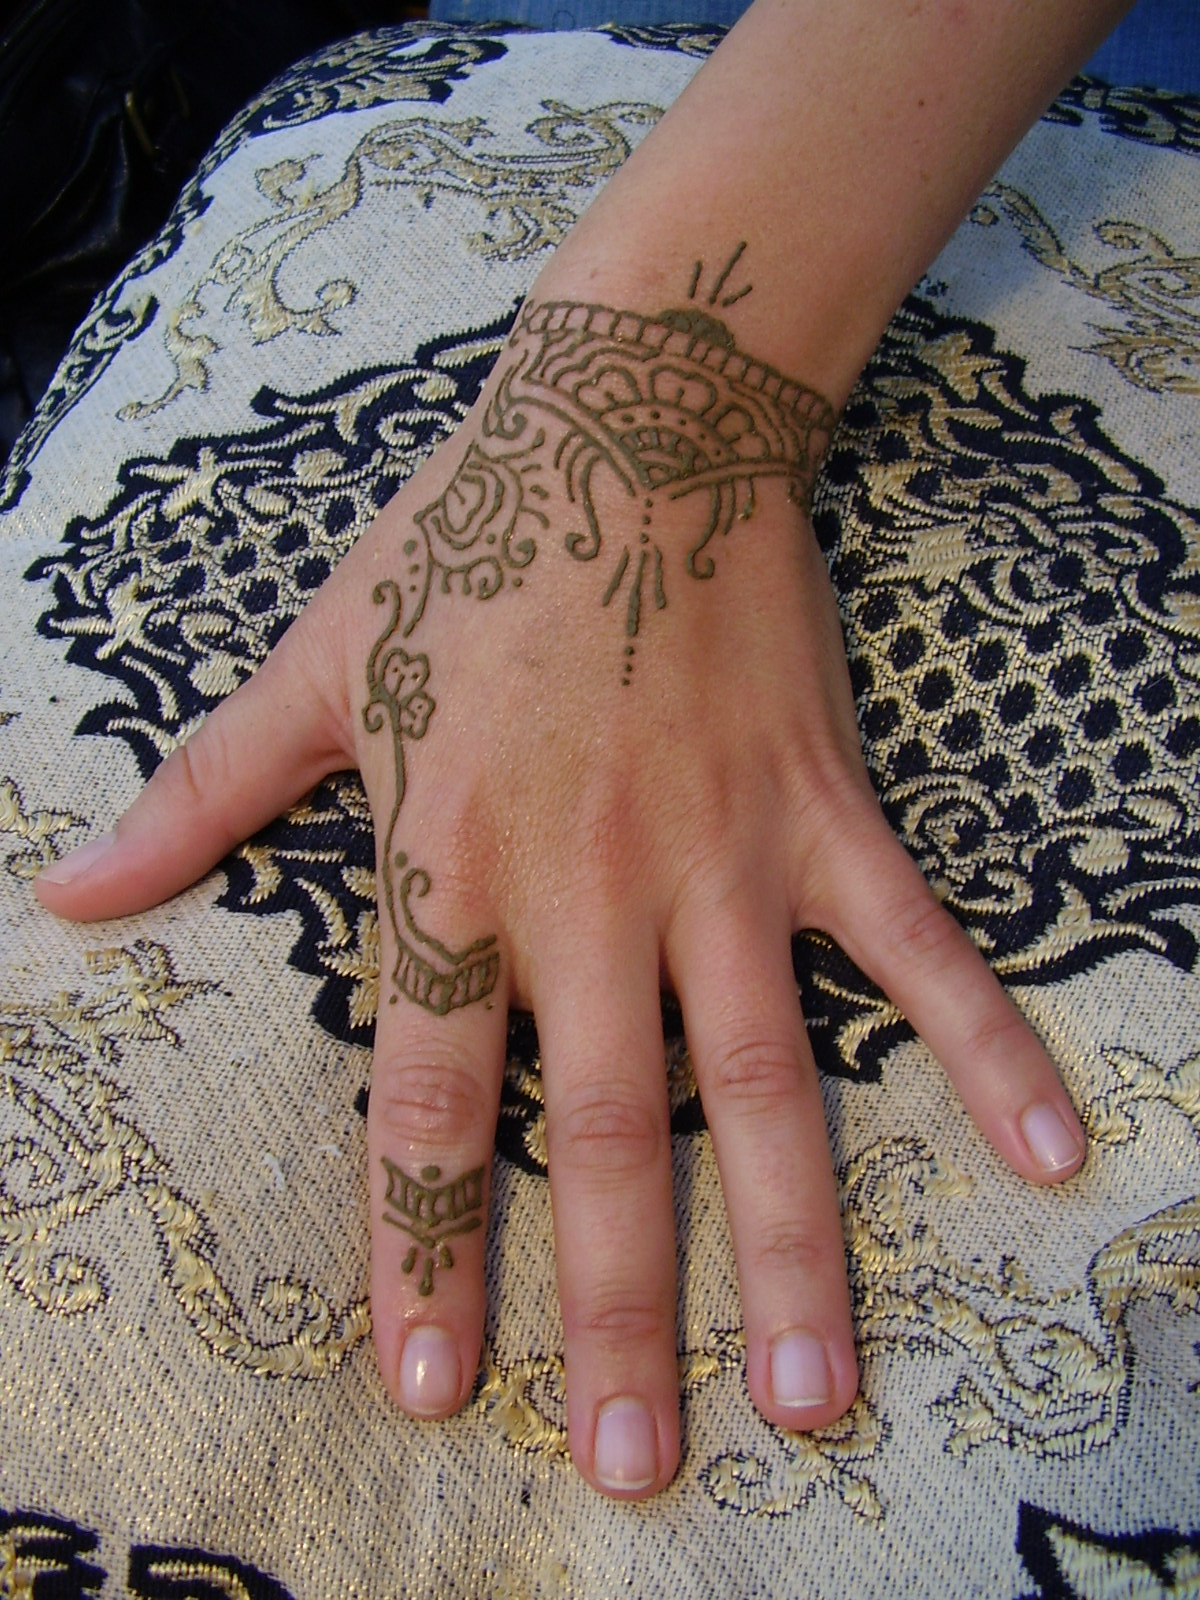 Choosing The Right Tattoo Henna Tattoo